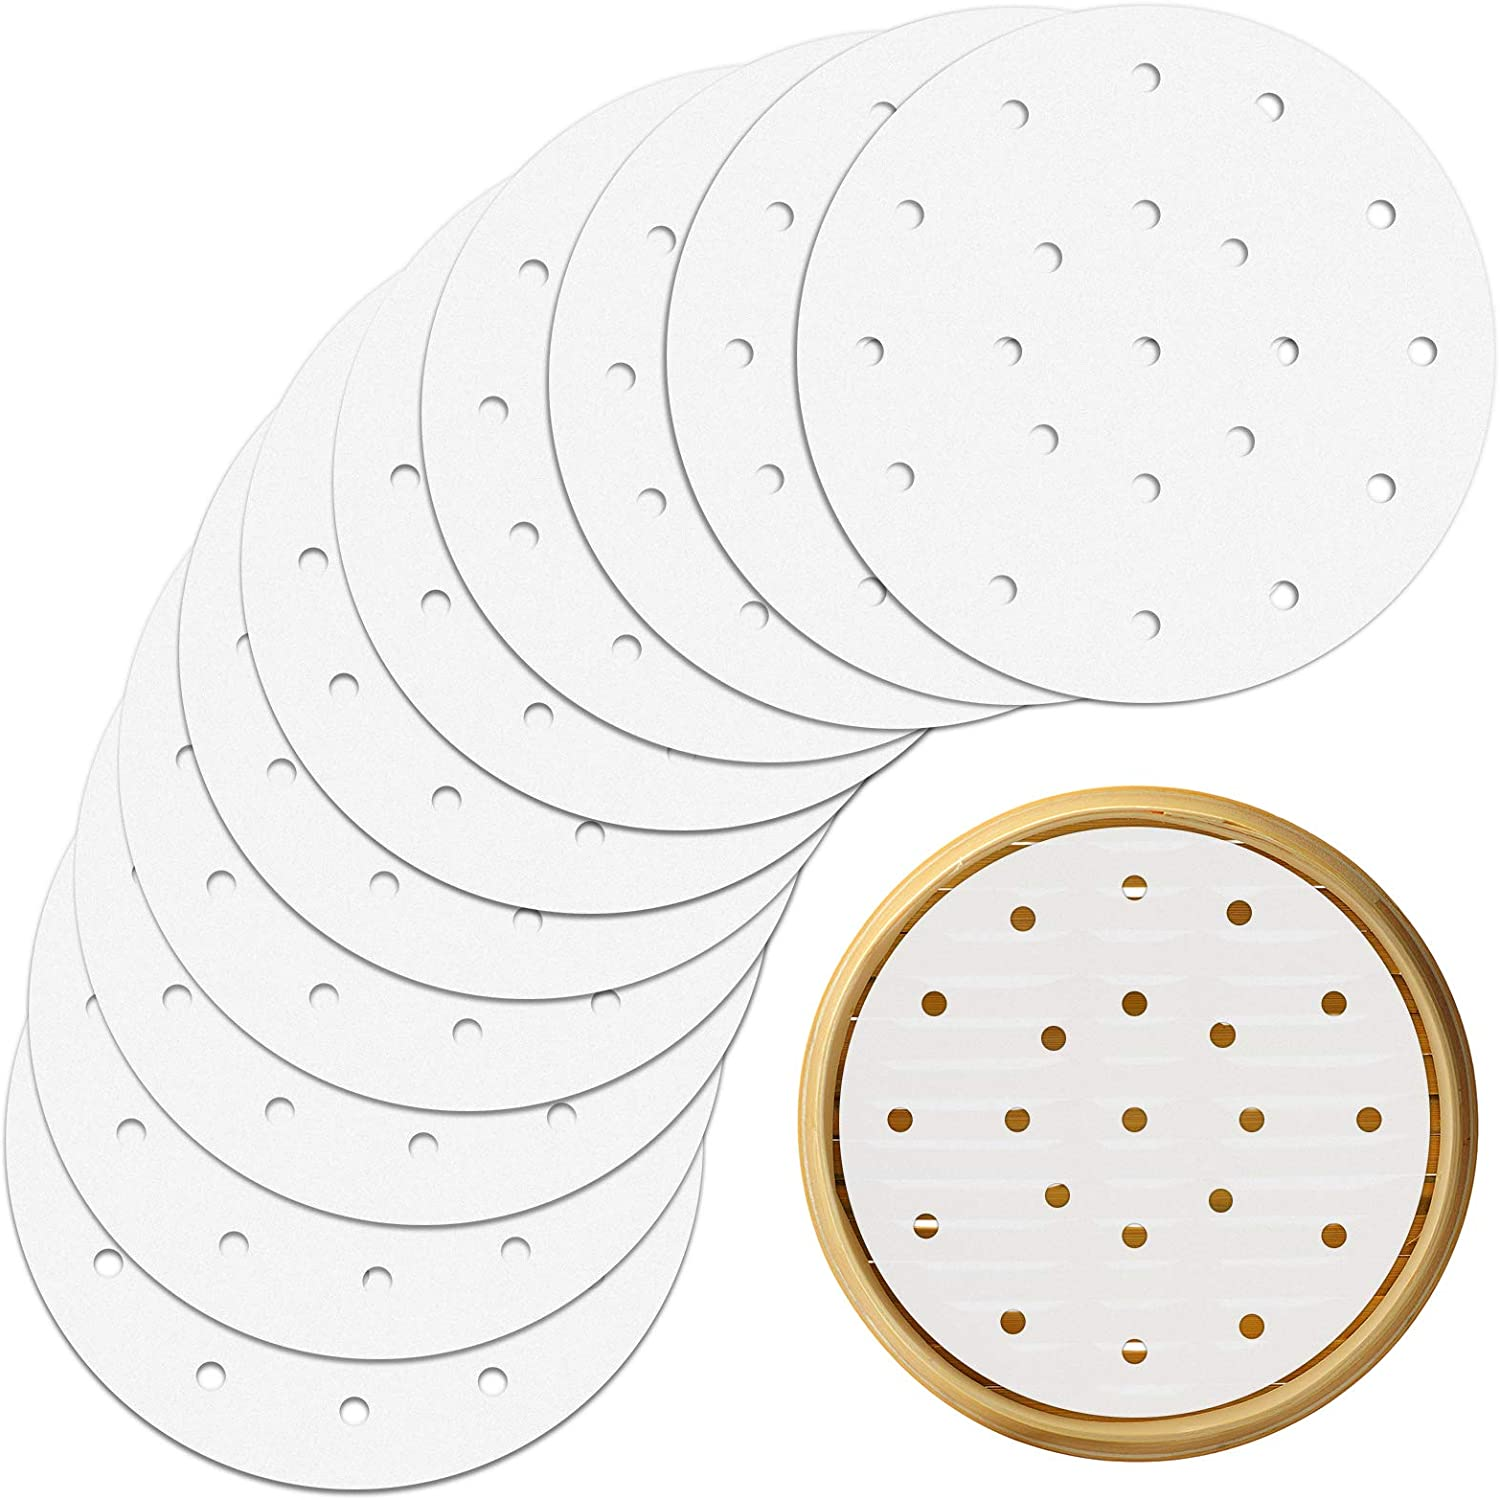 400pcs Air Fryer Liners, 8 inches Round Bamboo Steamer Liners, Premium Perforated Parchment Steaming Papers, Non-Stick Steamer Mat, Perfect for Air Fryers/Bamboo Steamer/Baking/Cooking (8 inch)